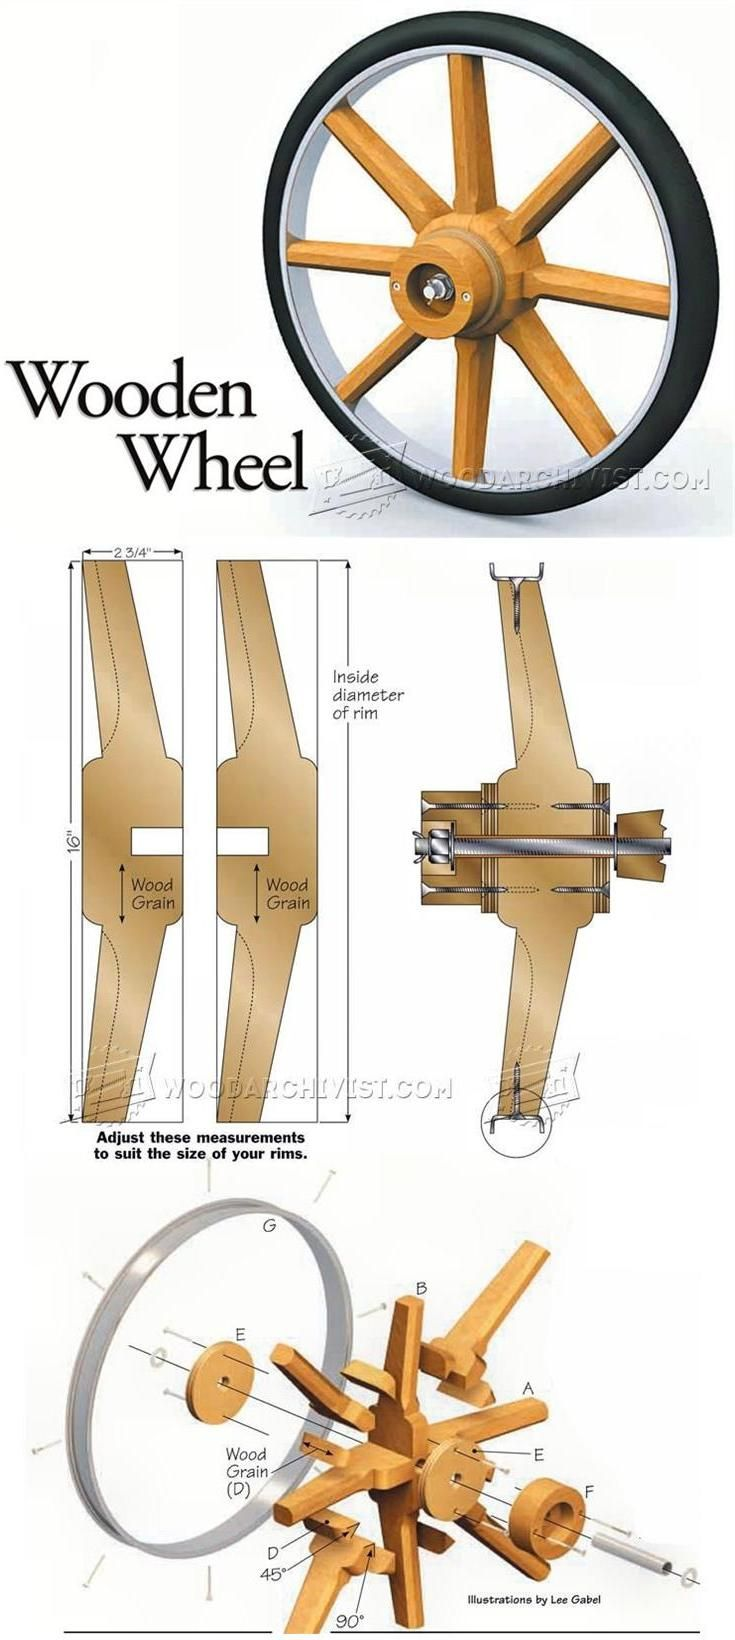 making wooden wheel - woodworking plans and projects